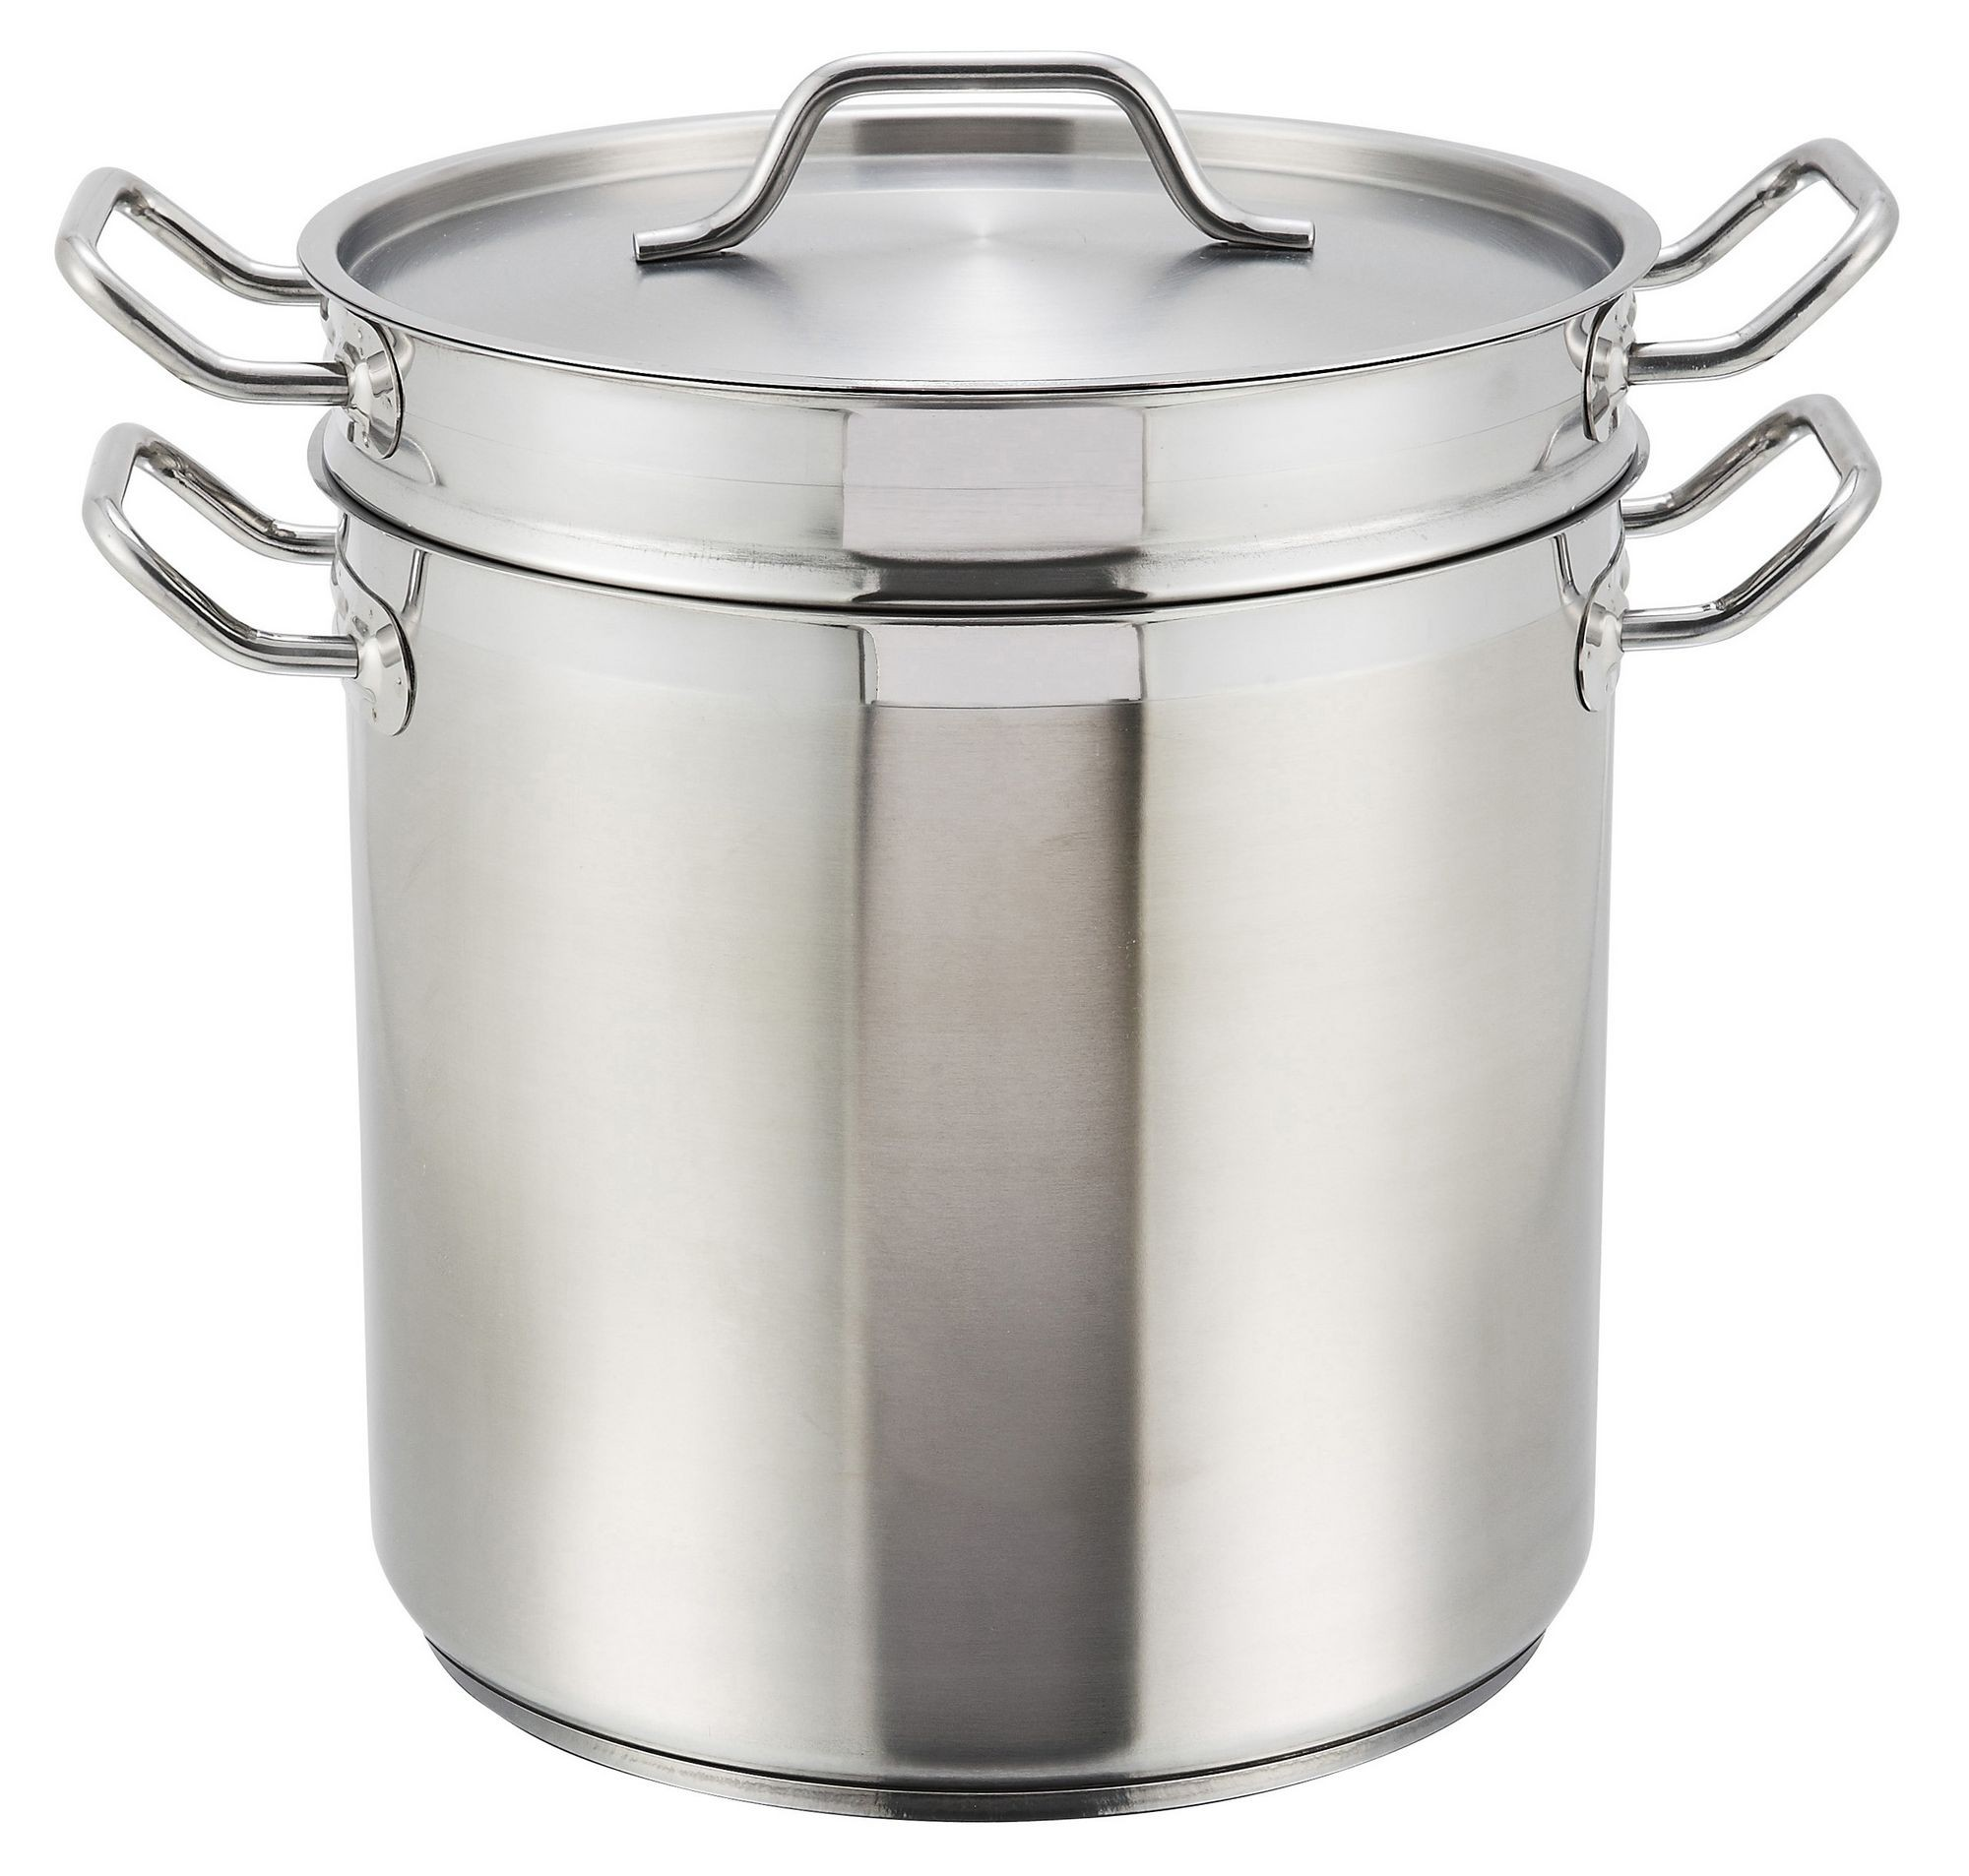 Stainless Steel 20-Qt Master Cook Double Boiler With Cover (5 mm aluminum core NSF)